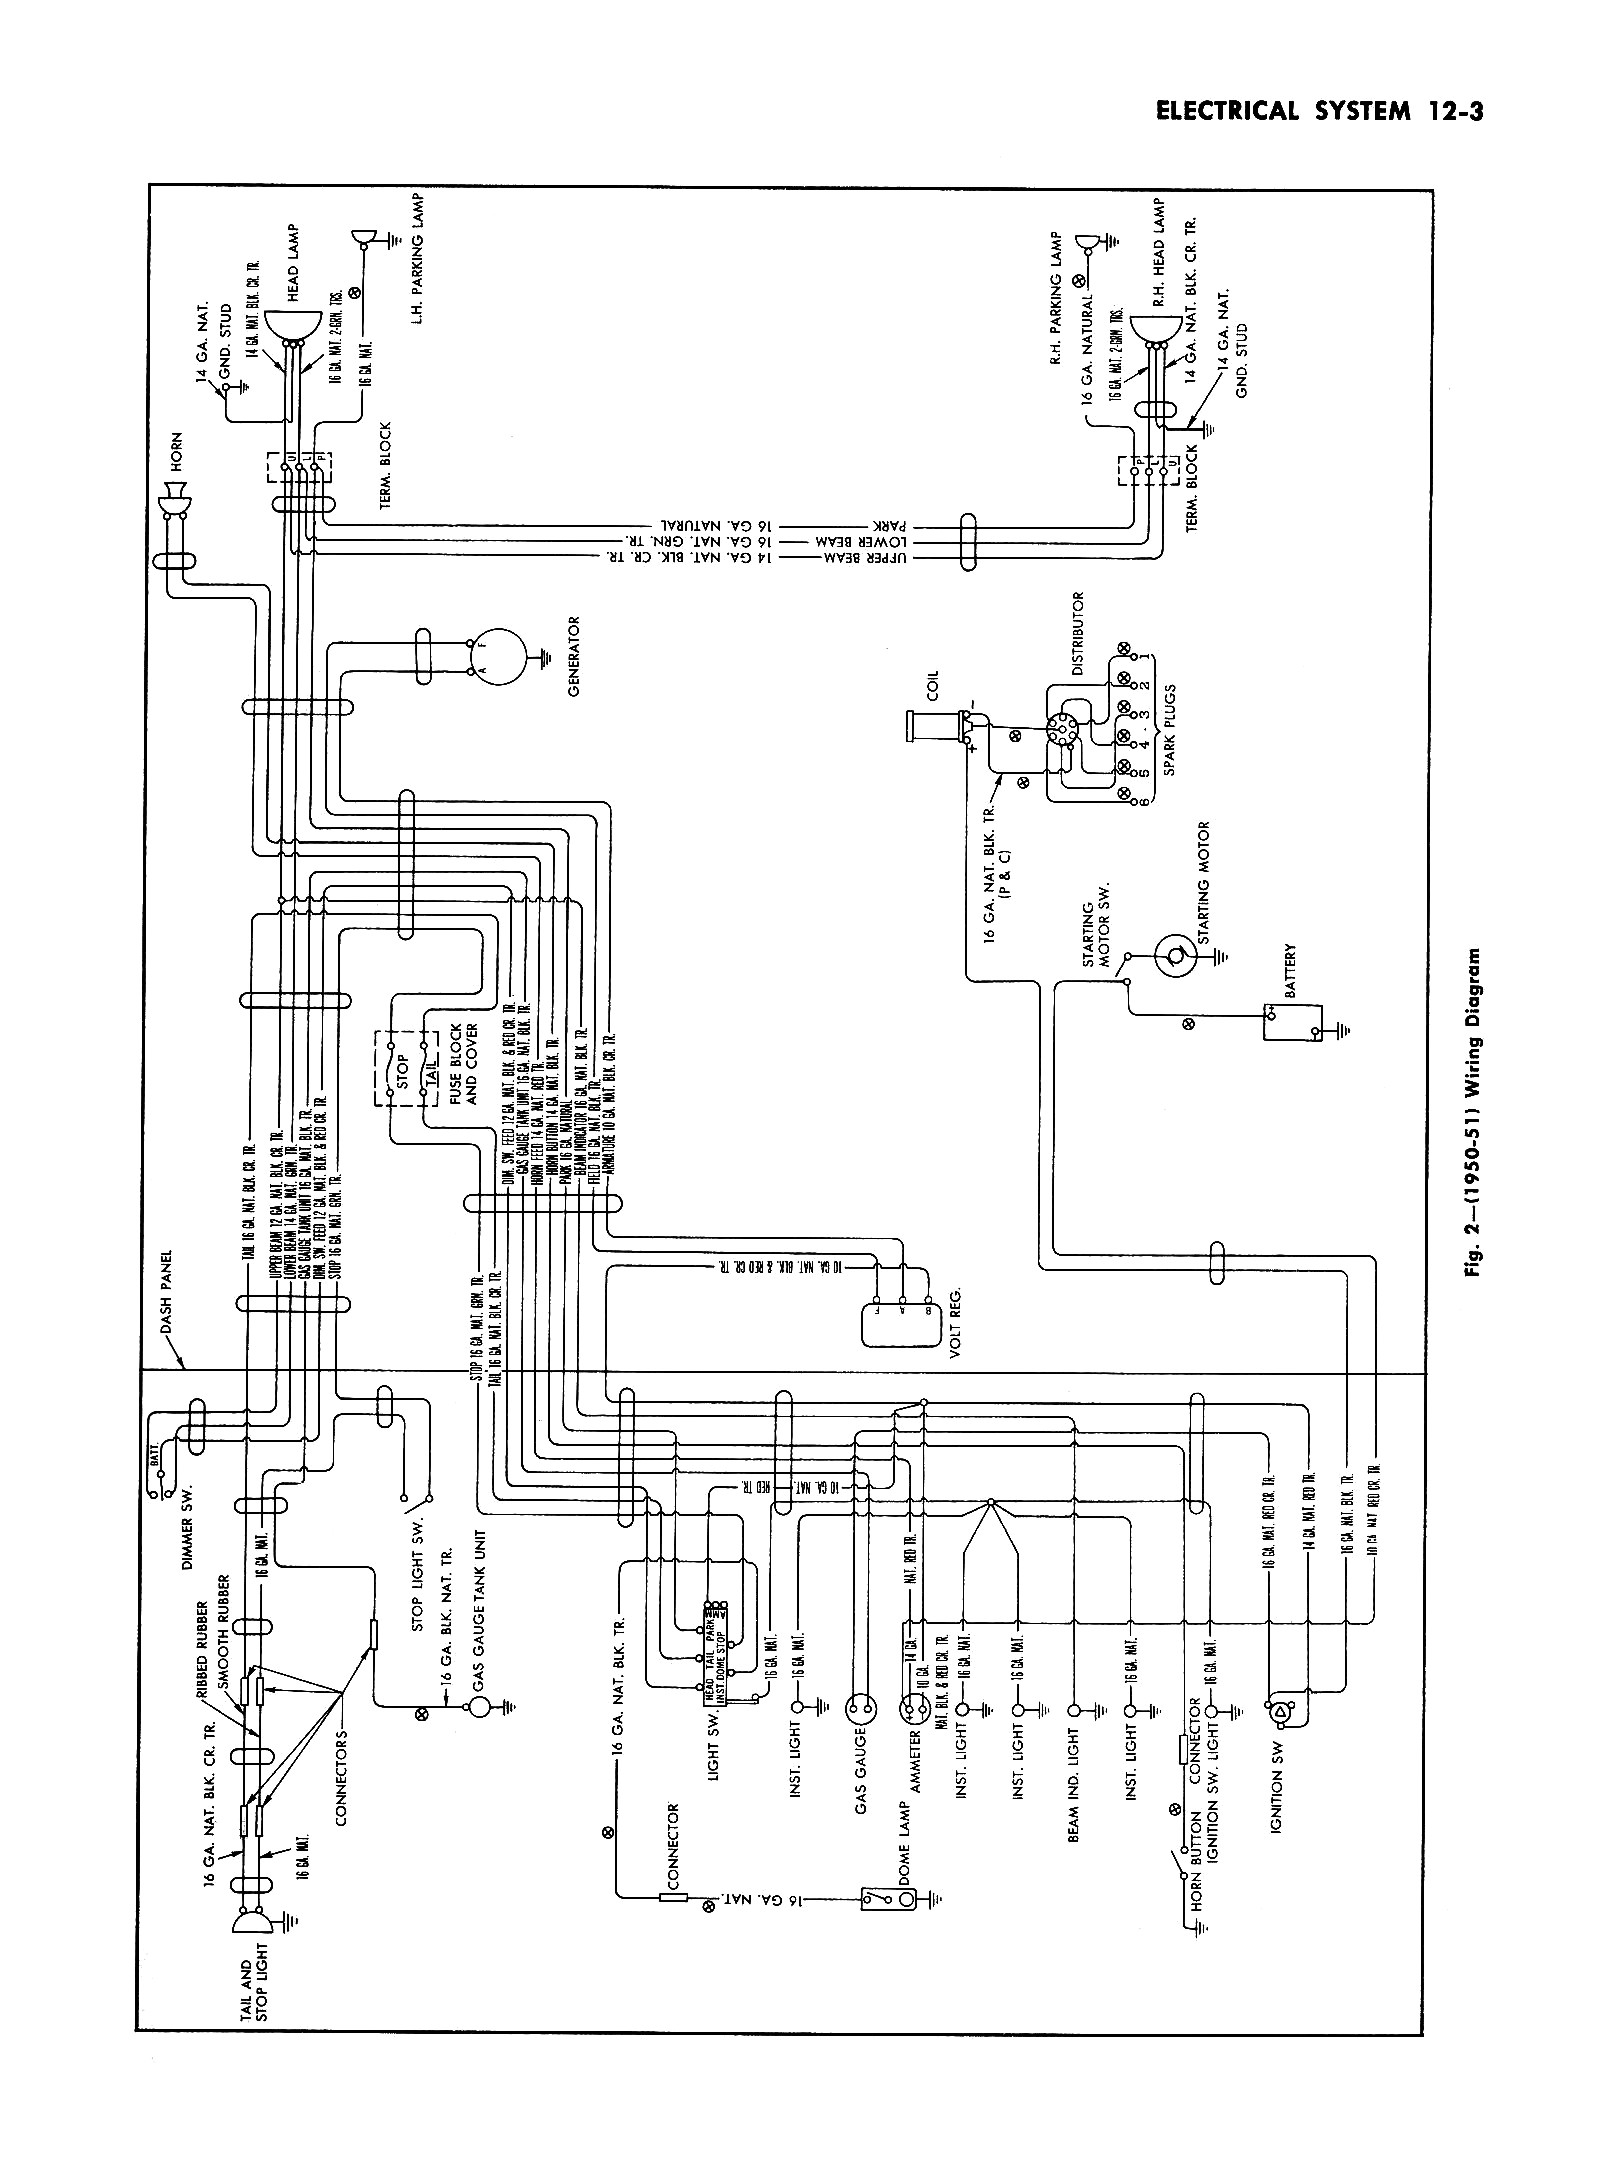 50car1 chevy wiring diagrams 1966 chevy truck turn signal wiring diagram at bakdesigns.co